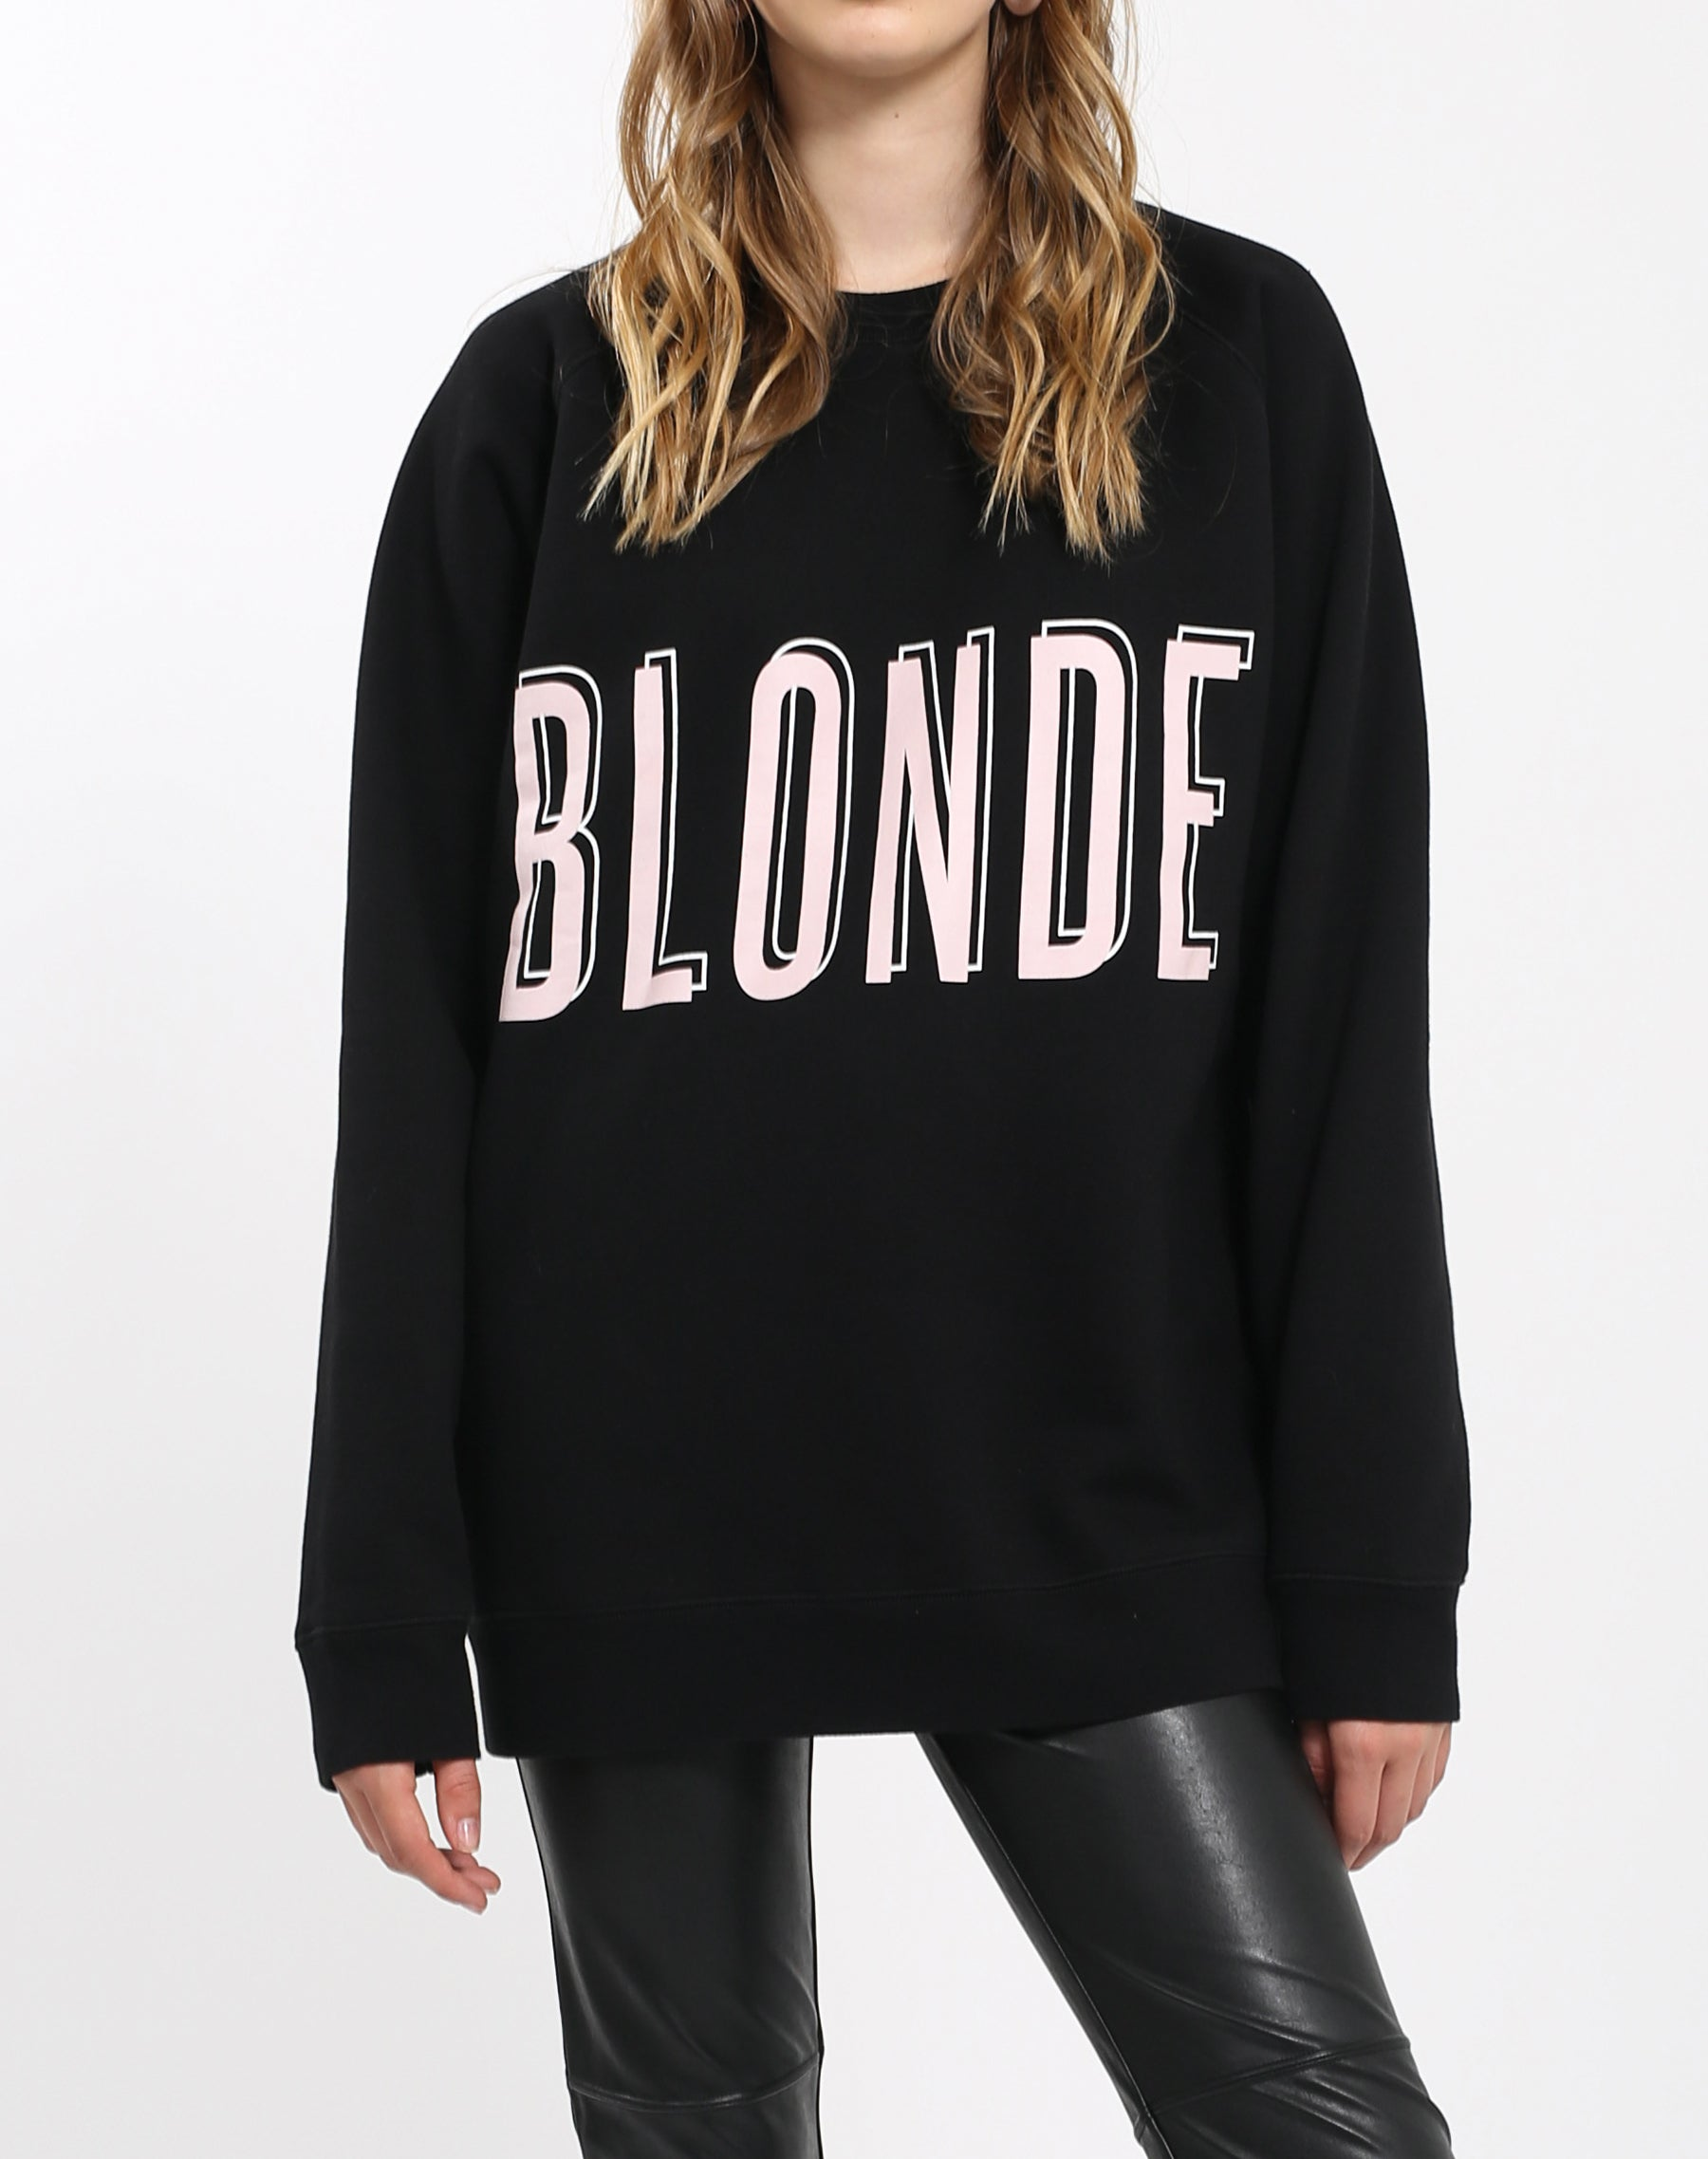 Photo of the Blonde big sister crew neck sweatshirt in pink by Brunette the Label.